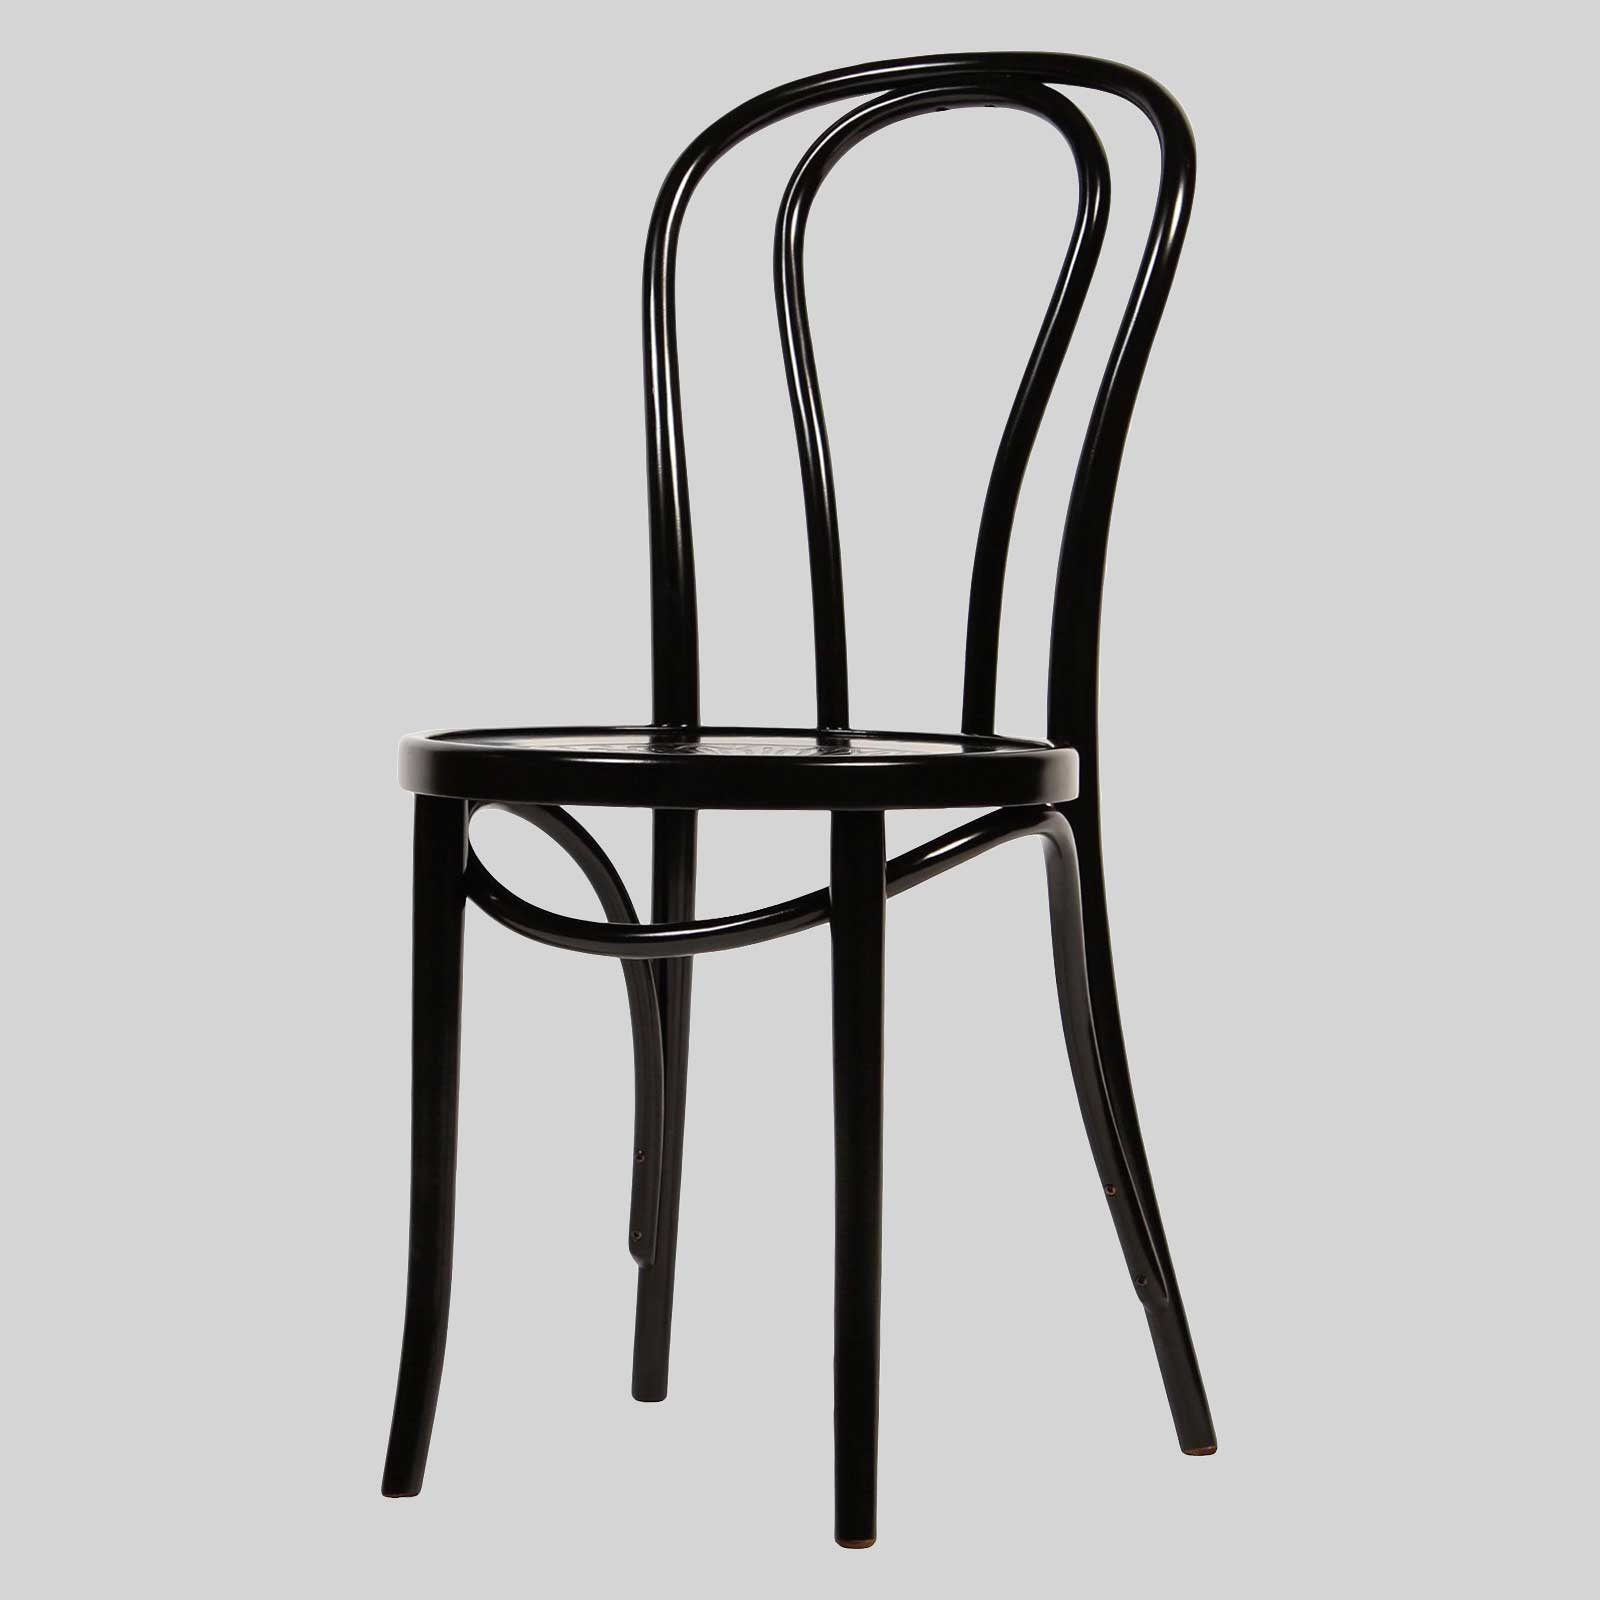 Bentwood Chairs For Hospitality Classique Concept